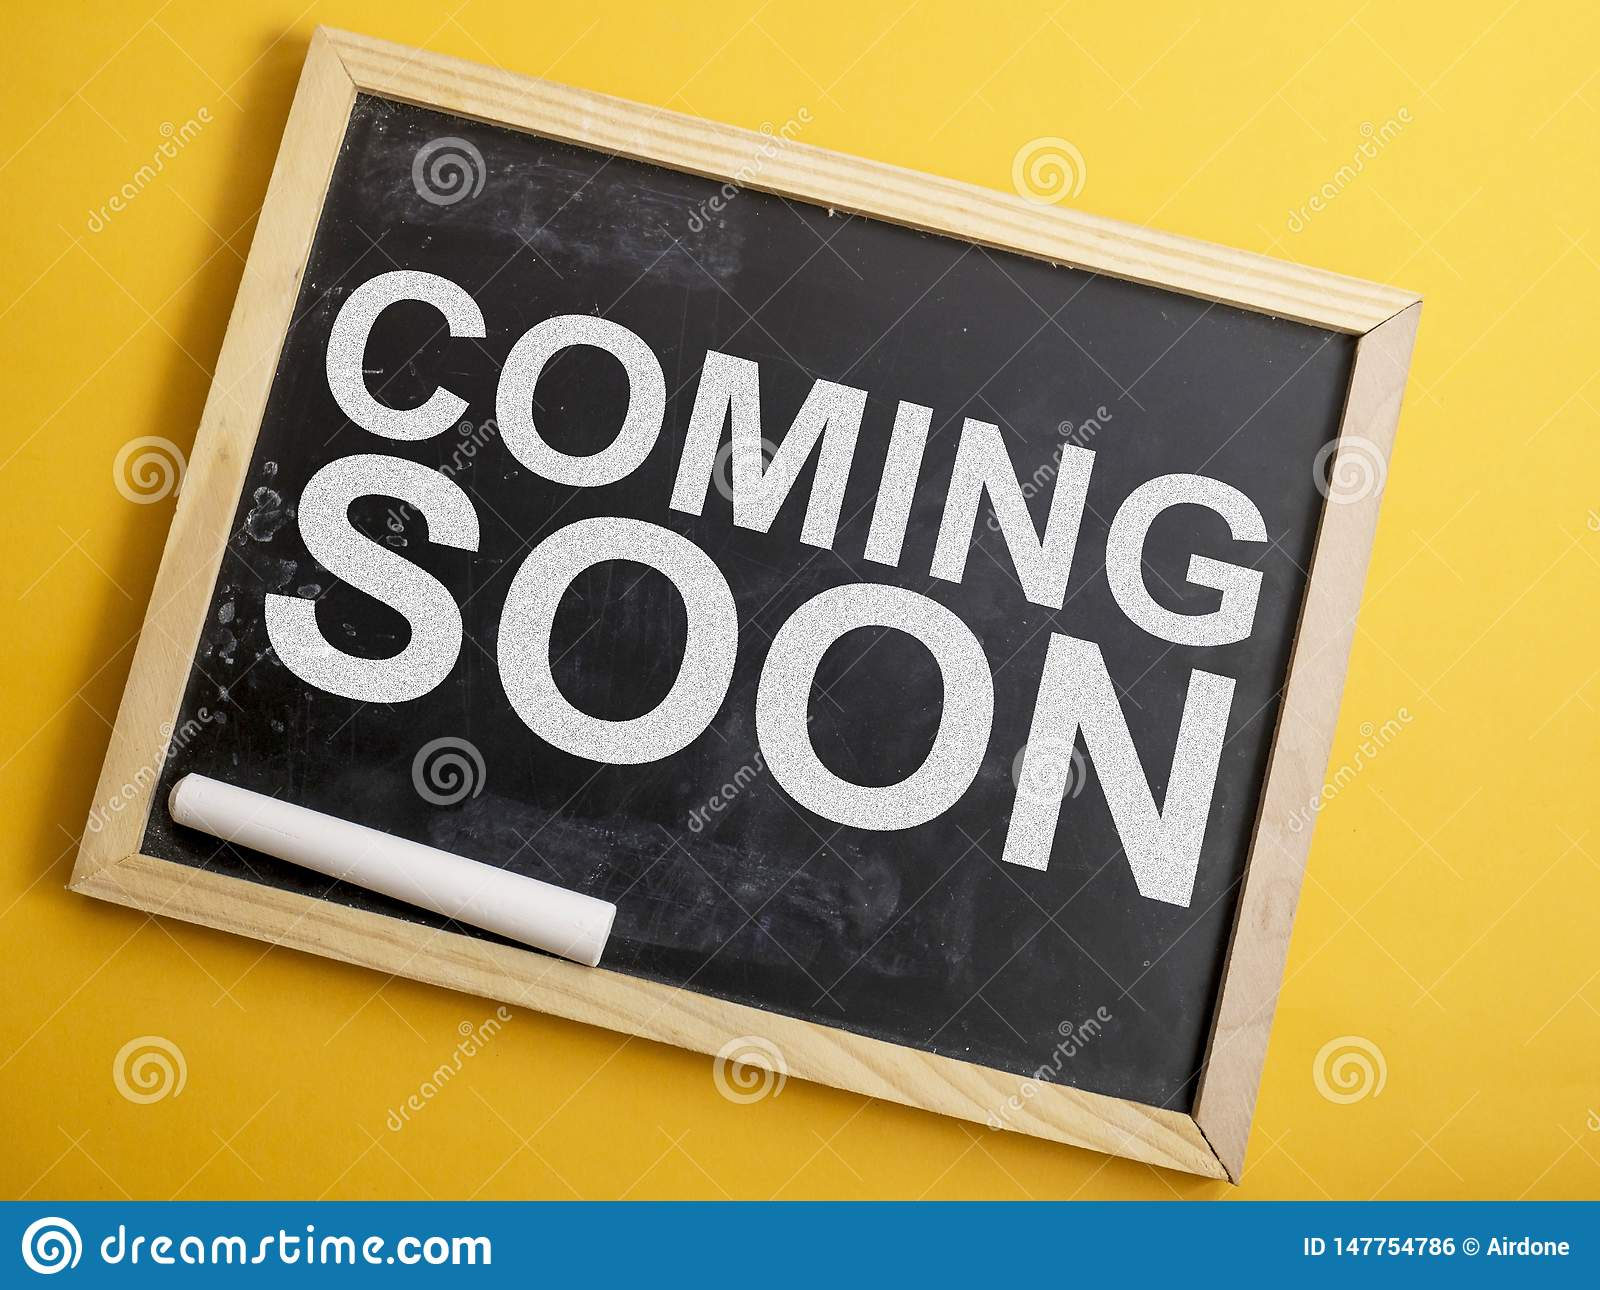 Coming Soon Words Typography Concept Stock Photo Image Of Promotion Launch 147754786